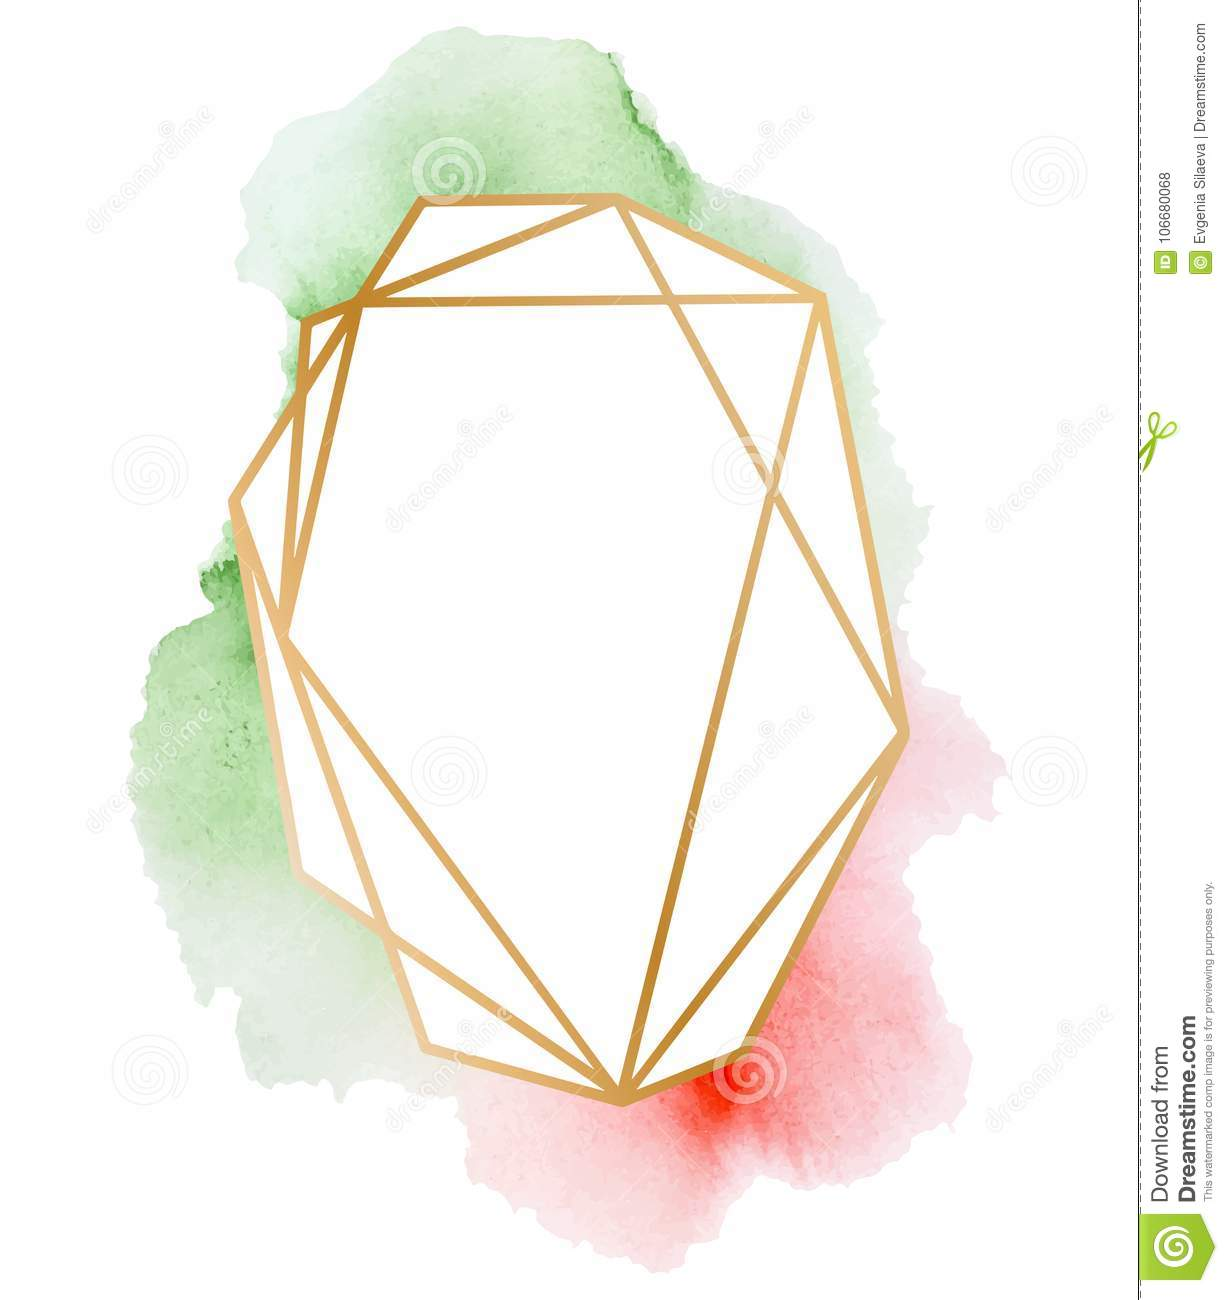 fbc6bc6c4b3 Polygonal Frames Set. Gold Glitter Triangles